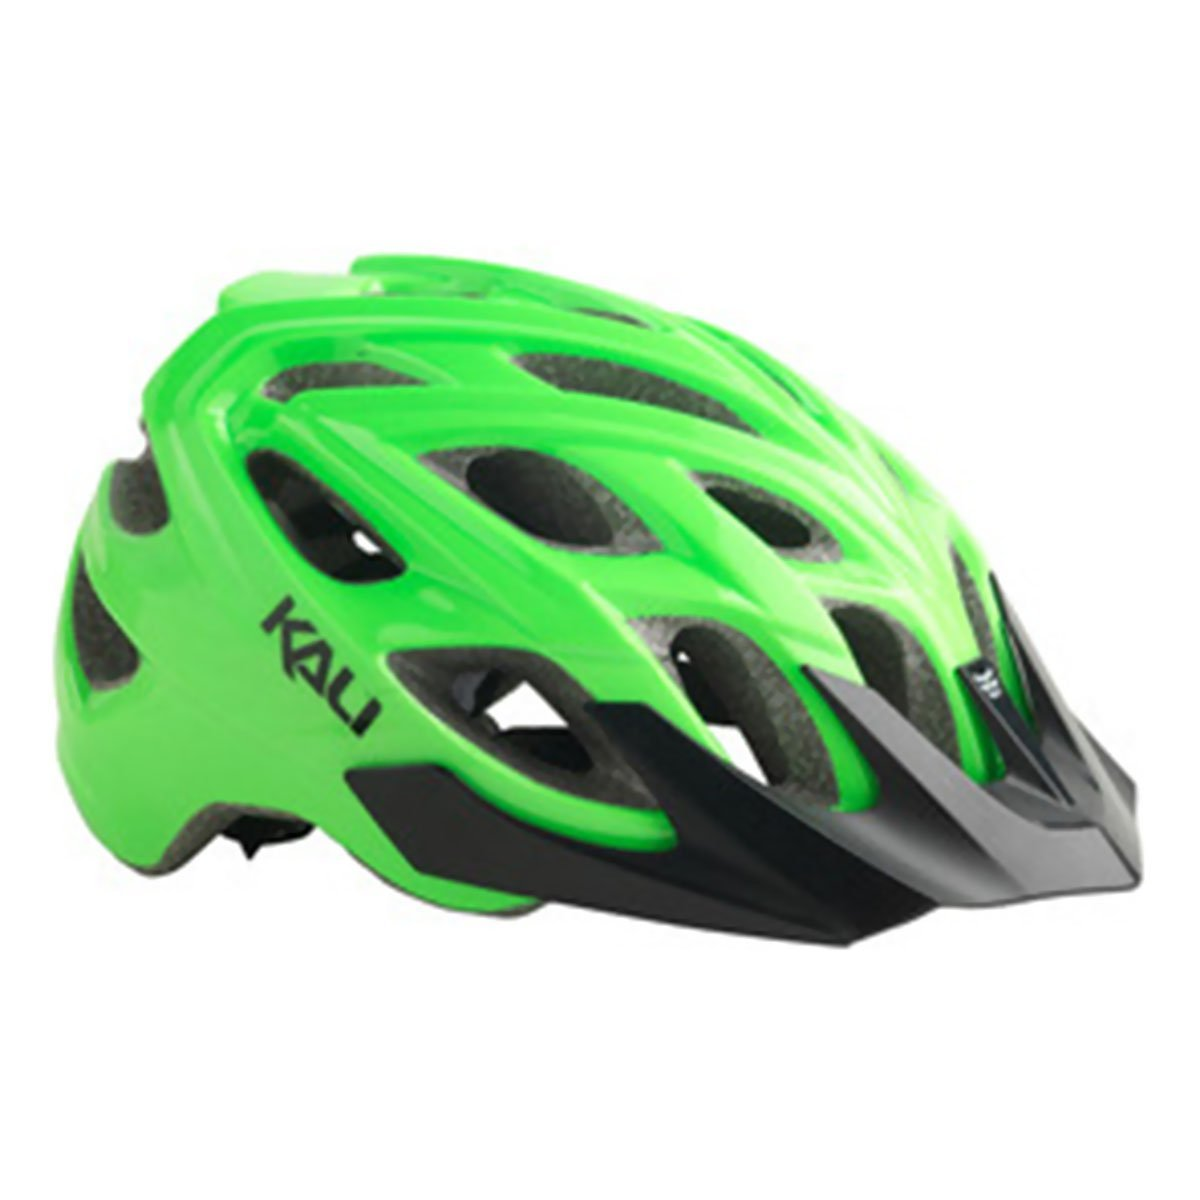 Green Kali Protectives Bicycle Helmets